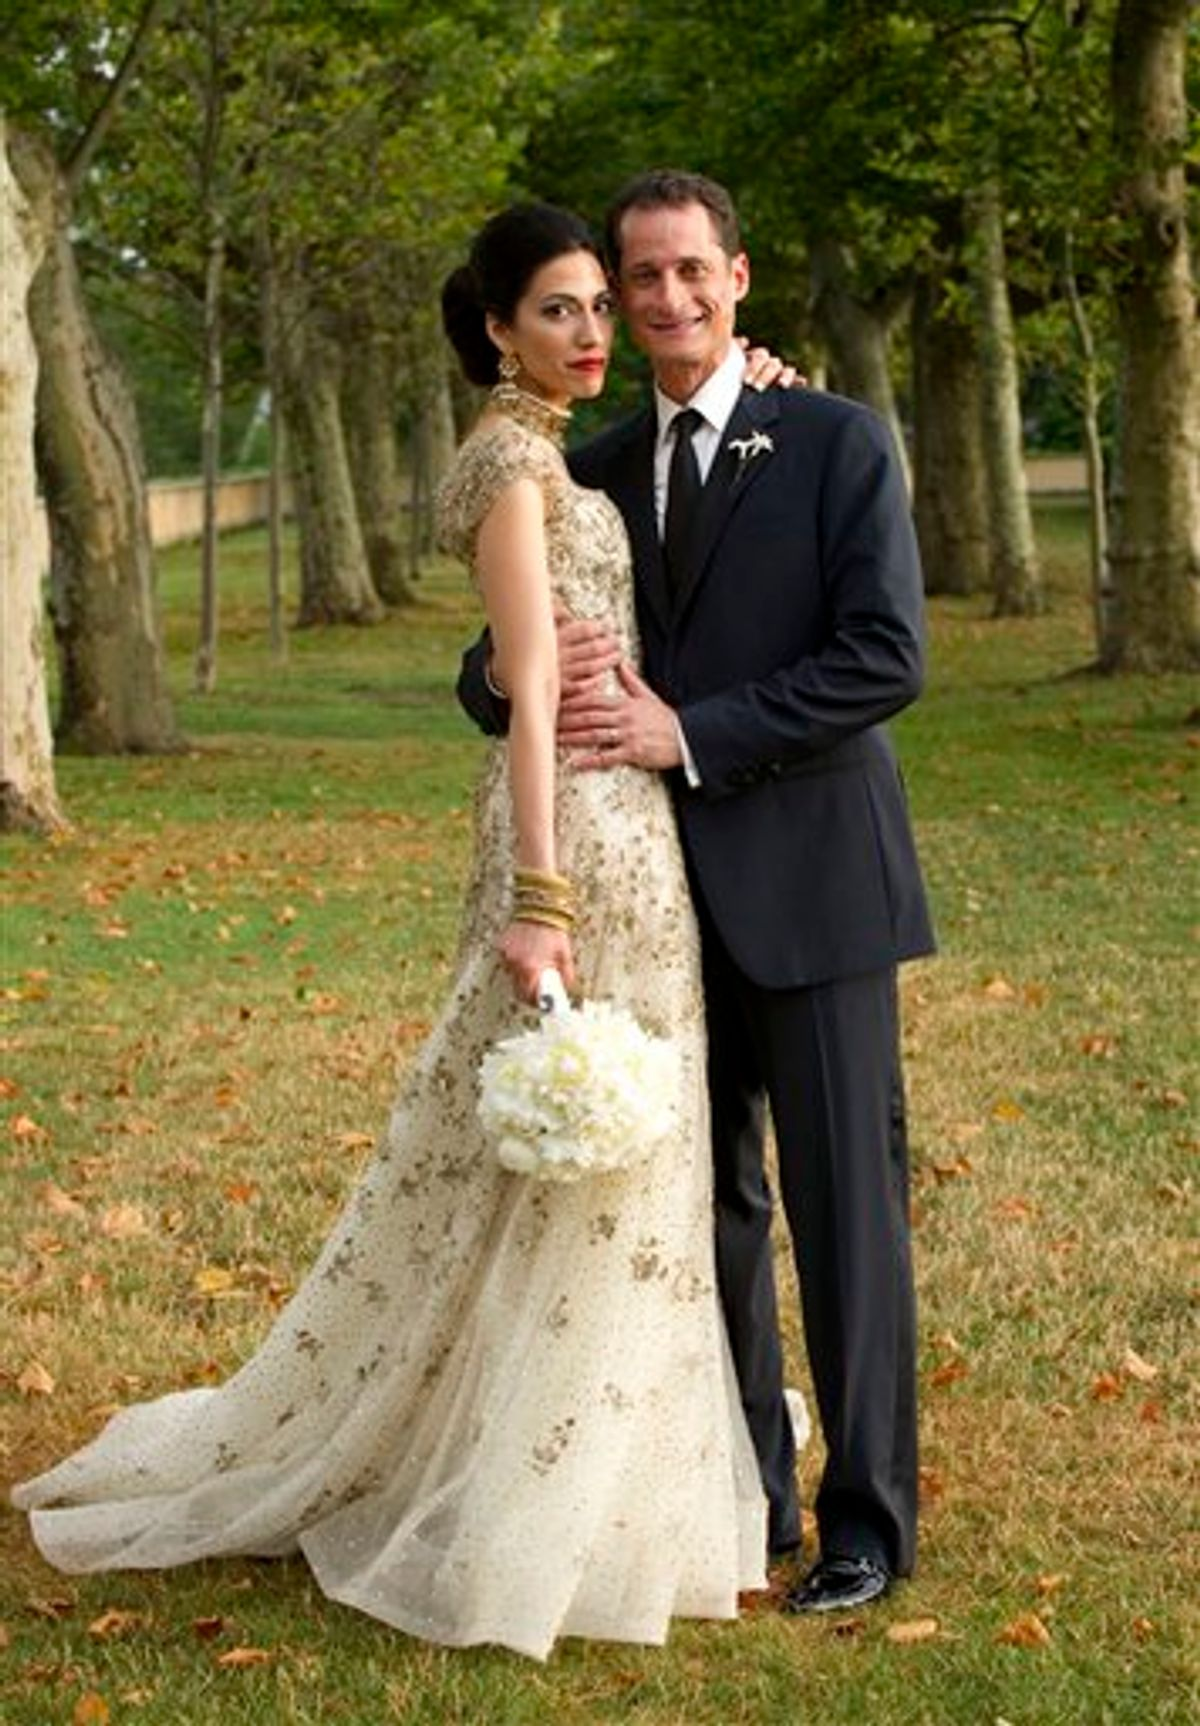 """FILE - In this July 10, 2010, file photo provided by Marie Ternes, Rep. Anthony Weiner, D-N.Y., poses with his wife Huma Abedin, close aide to Secretary of State Hillary Rodham Clinton, for a formal wedding portrait at the Oheka Castle in Huntington, N.Y.  Weiner confessed Monday, June 6, 2011, that he tweeted a bulging-underpants photo of himself to a young woman and admitted to """"inappropriate"""" exchanges with six women before and after getting married.     (AP Photo/Barbara Kinney, File) (AP)"""